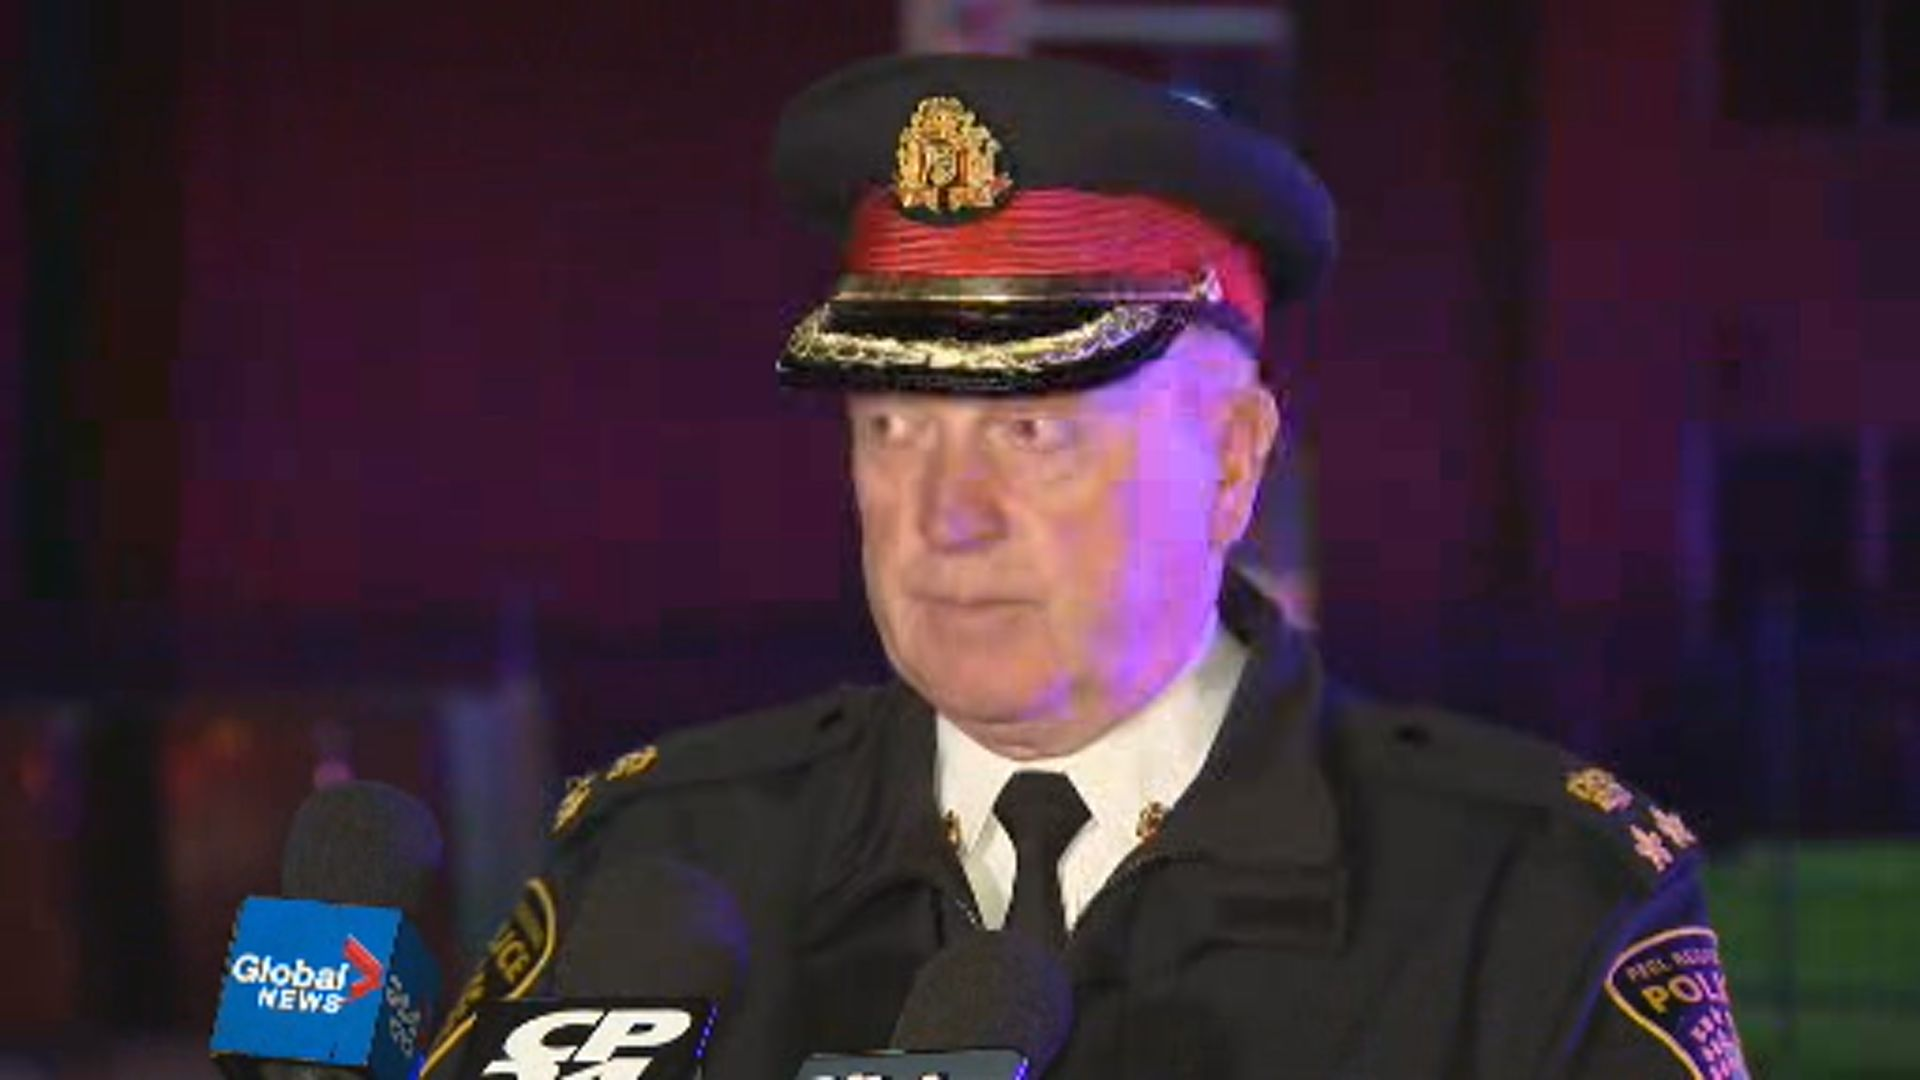 Peel police provide details on ages, genders of victims in Mississauga shooting